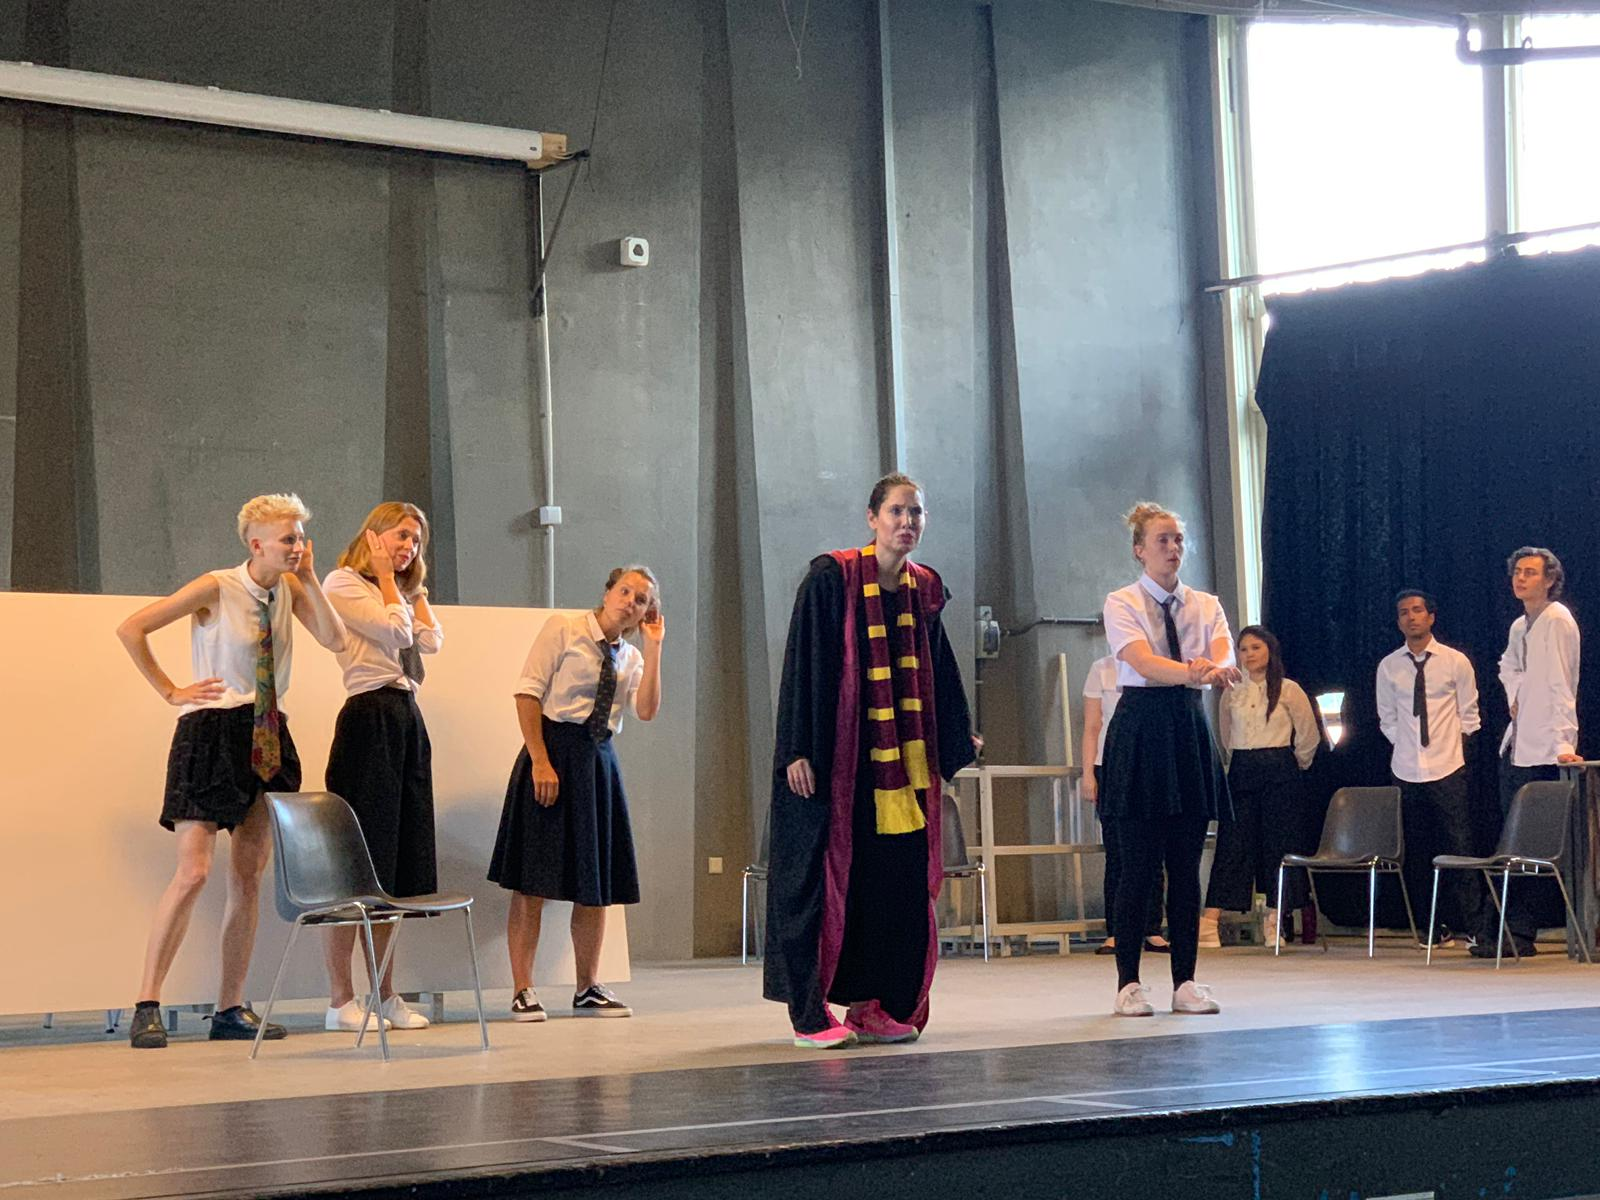 """From the show """"the magic school"""". Five actors on stage, four of them wear a white suit and tie. The fifth wears a cape and scarf, she is probably the teacher. Everybody faces the audience"""